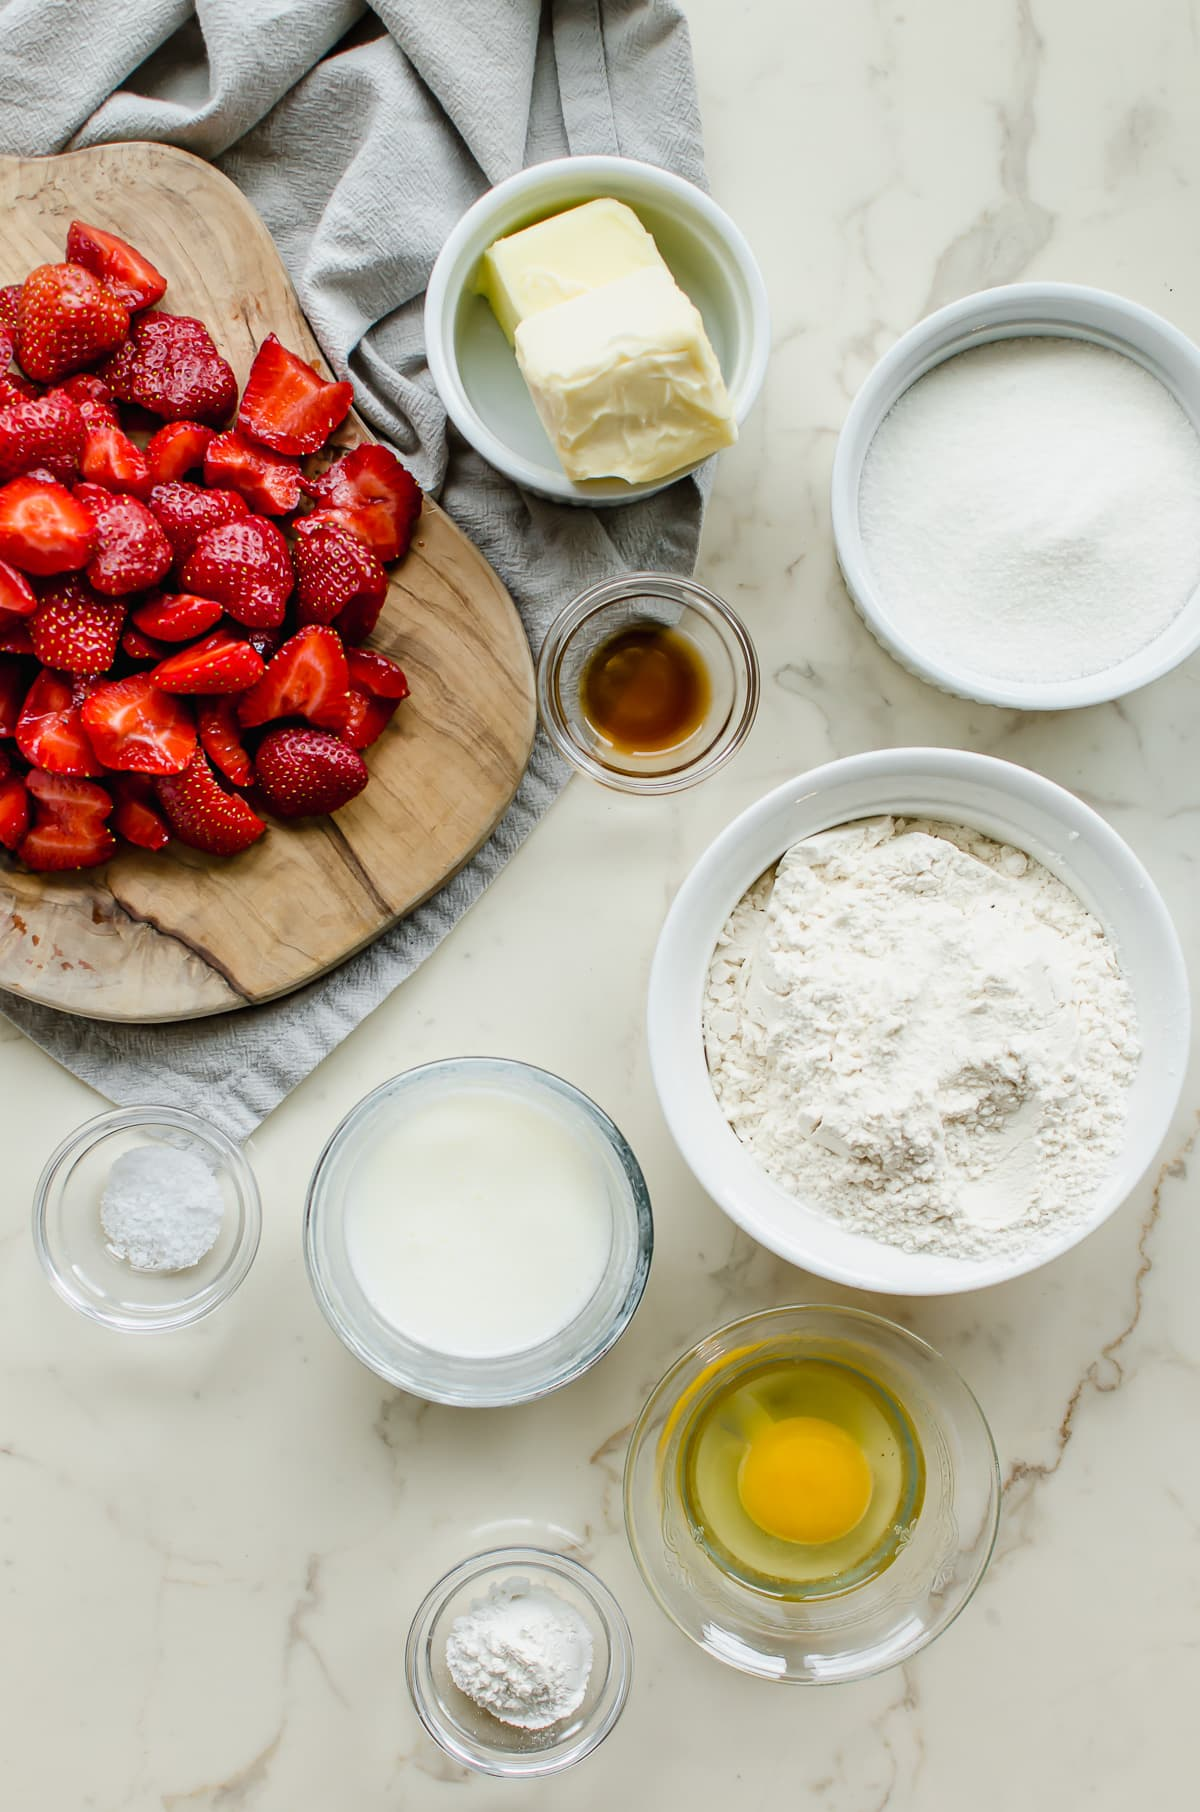 Measured ingredients in white bowls for making a strawberry buttermilk cake.